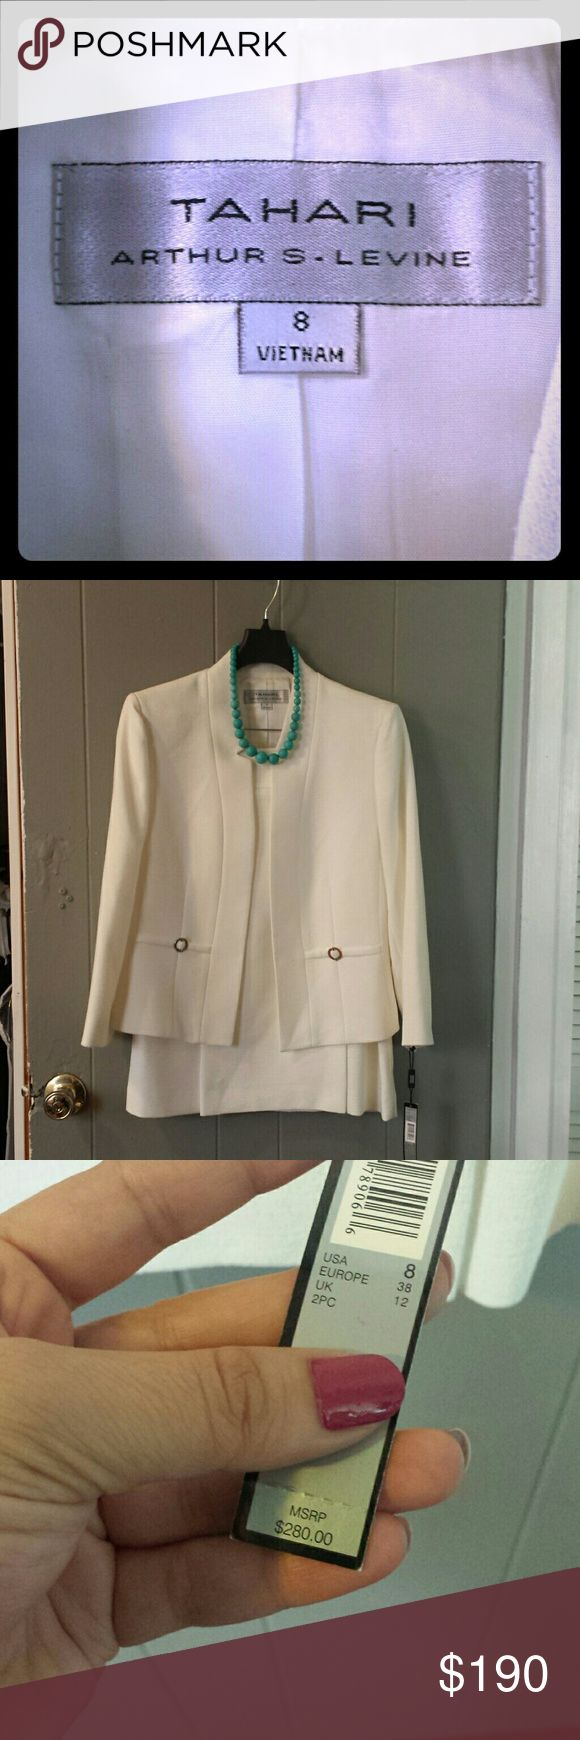 Tahari:White Skirt Suit Tahari:White Skirt Suit. NWT  Add the necklace for $10 Tahari Jackets & Coats Blazers